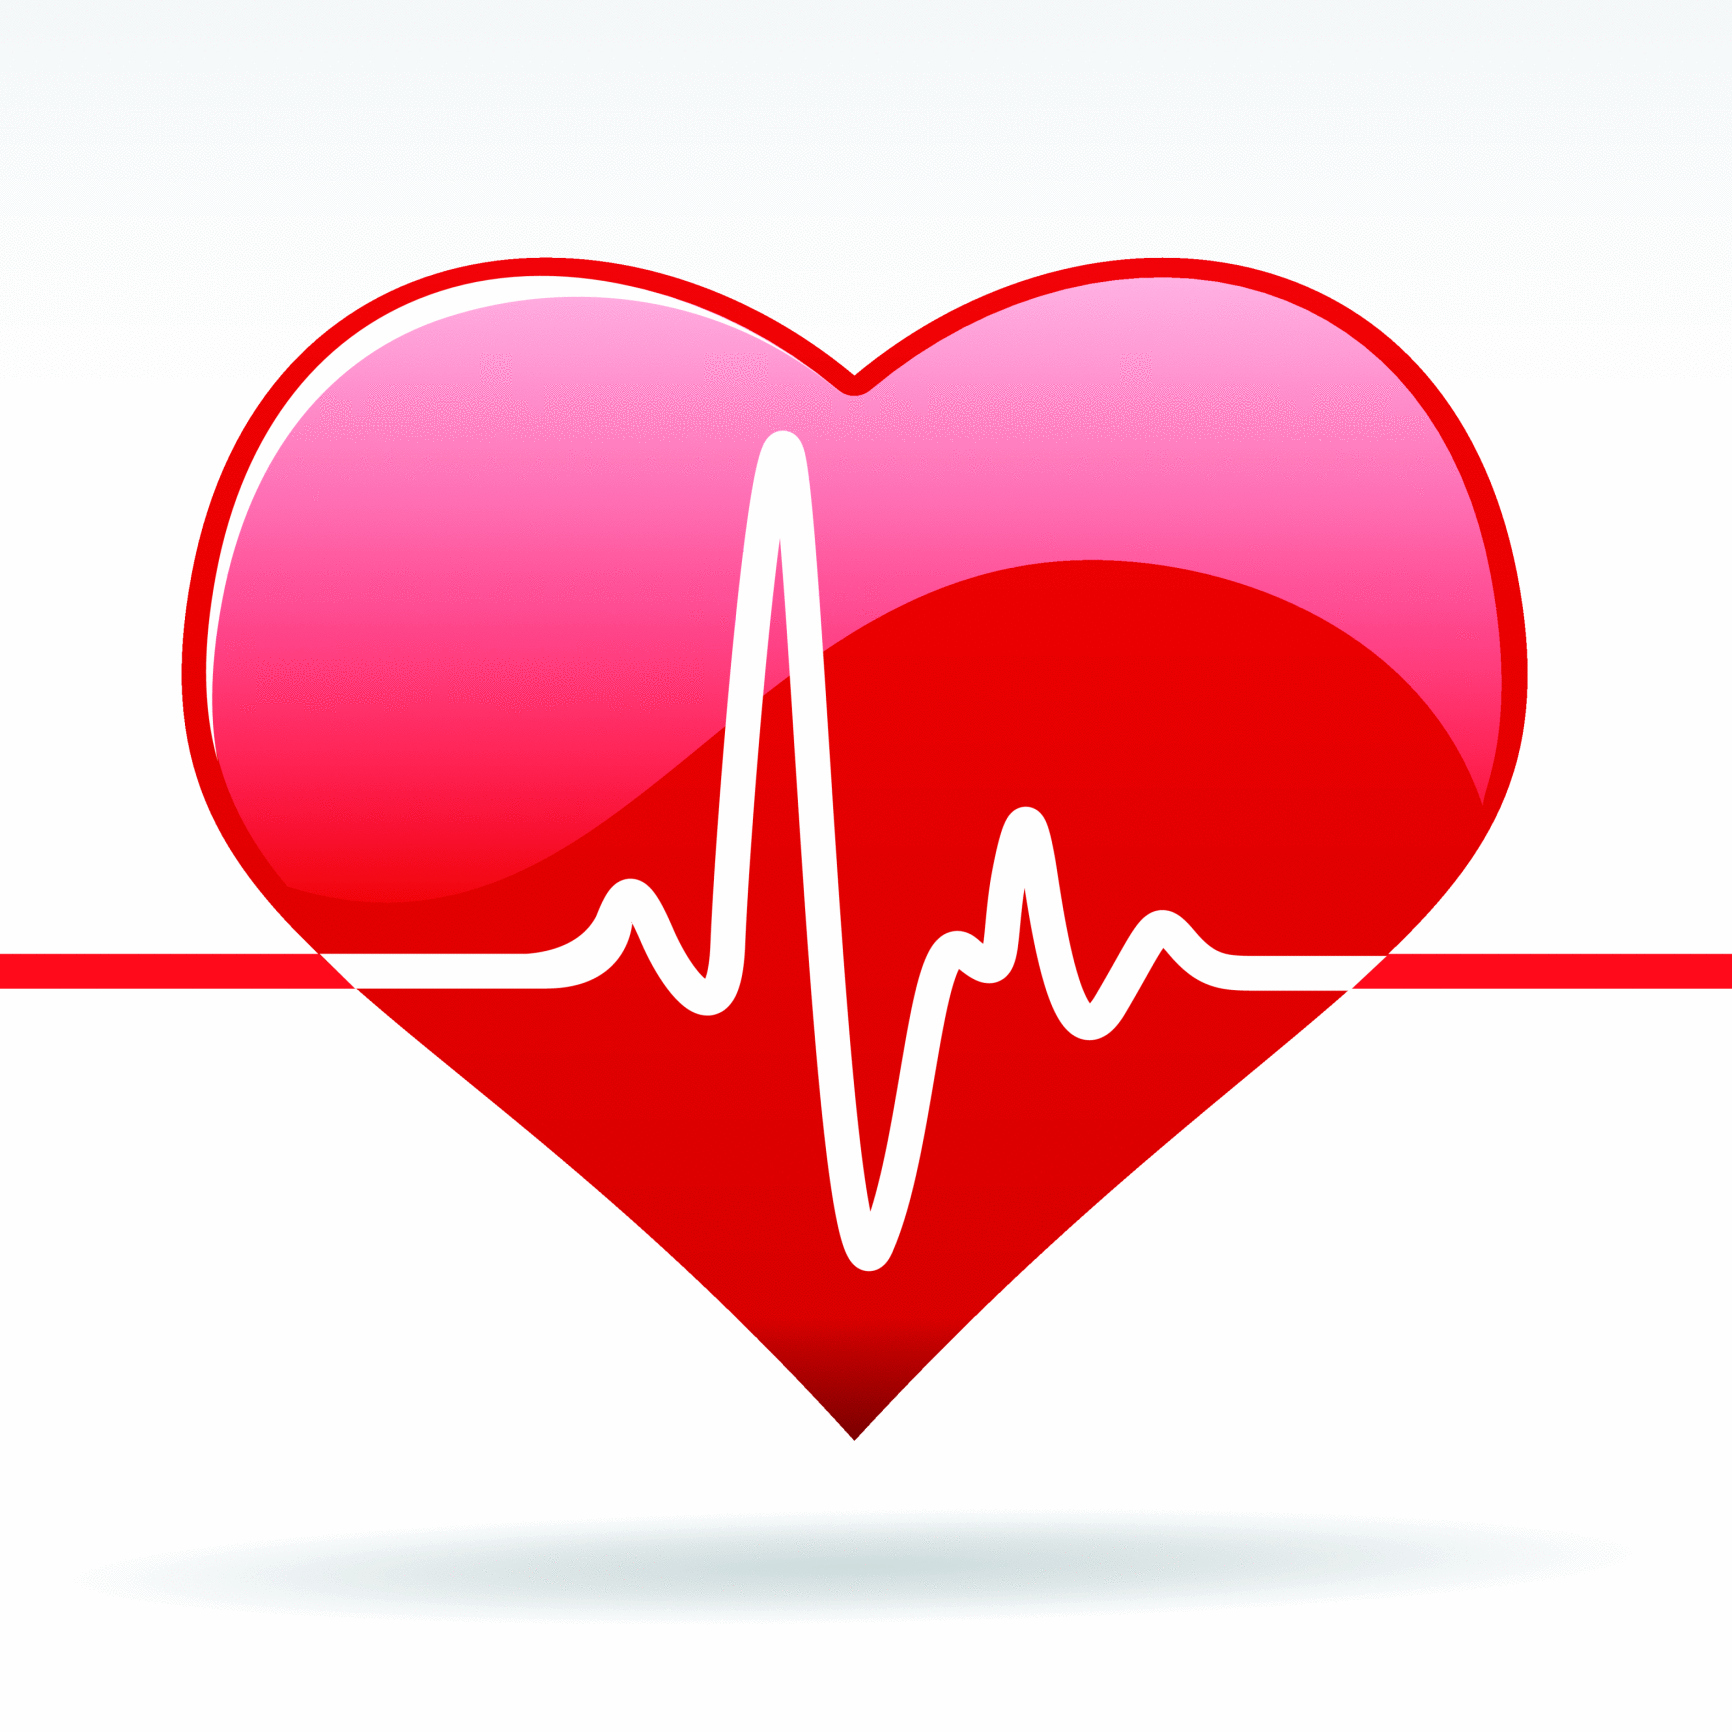 Health clipart human health. Free heart medical cliparts